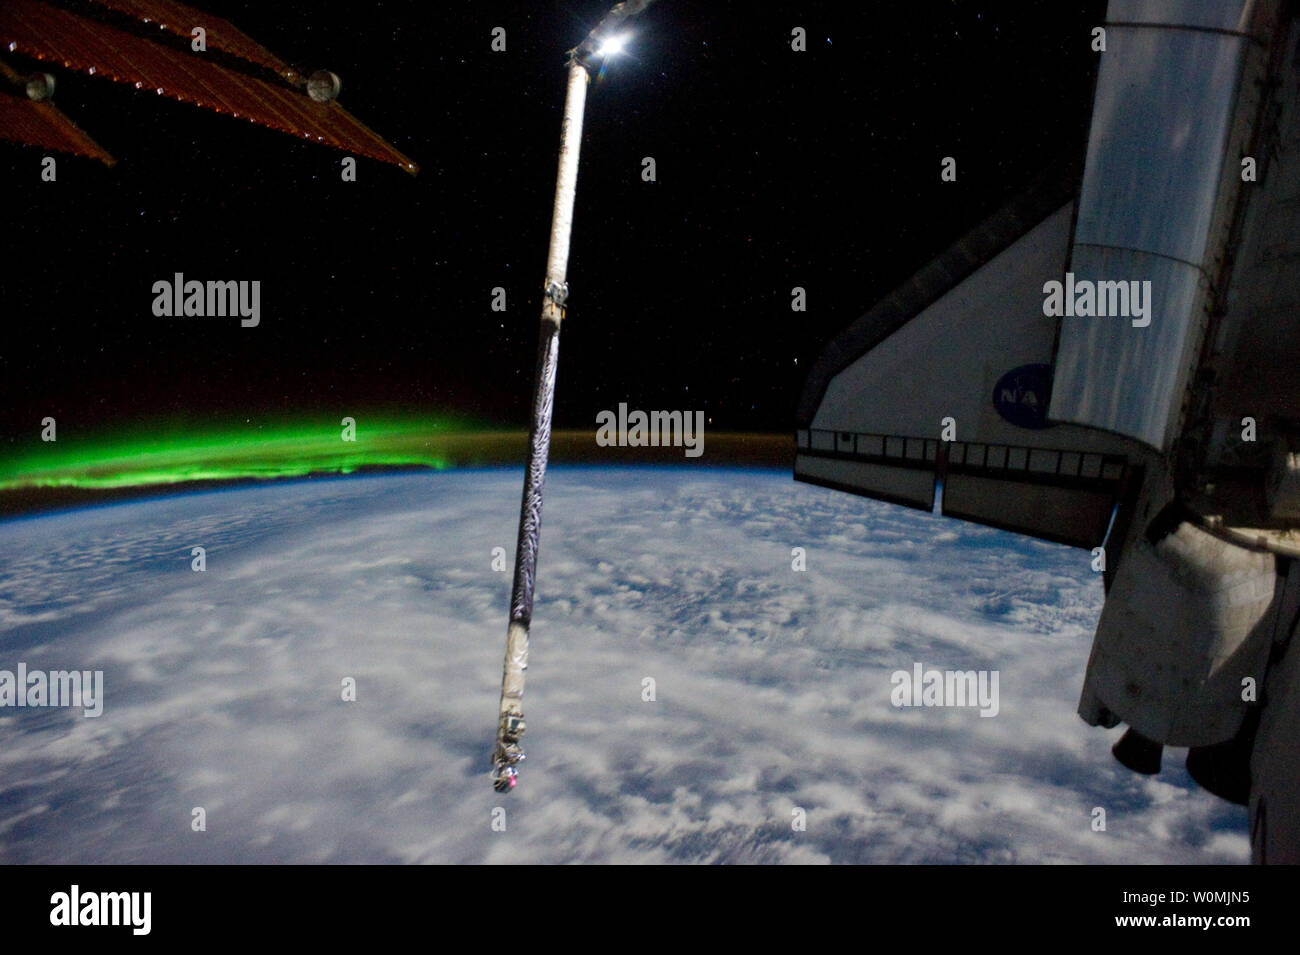 This NASA image taken on July 14, 2011 by a members of the joint crews of NASA mission STS-135 and crew onboard the International Space Station shows this image of Atlantis and its Orbital Boom Sensor System robot arm extension backdropped against Earth's horizon and a greenish phenomenon associated with Aurora Australis. One of the station's solar array panels appears at upper left. Space Shuttle Atlantis is at the International Space Station on mission STS-135, the final shuttle mission.  UPI/NASA - Stock Image